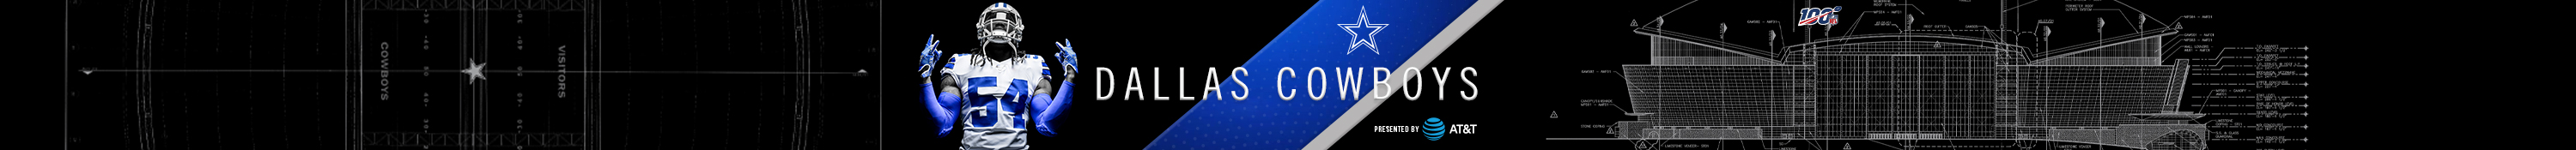 photo relating to Nfl Week 13 Printable Schedule referred to as Dallas Cowboys Formal Website of the Dallas Cowboys